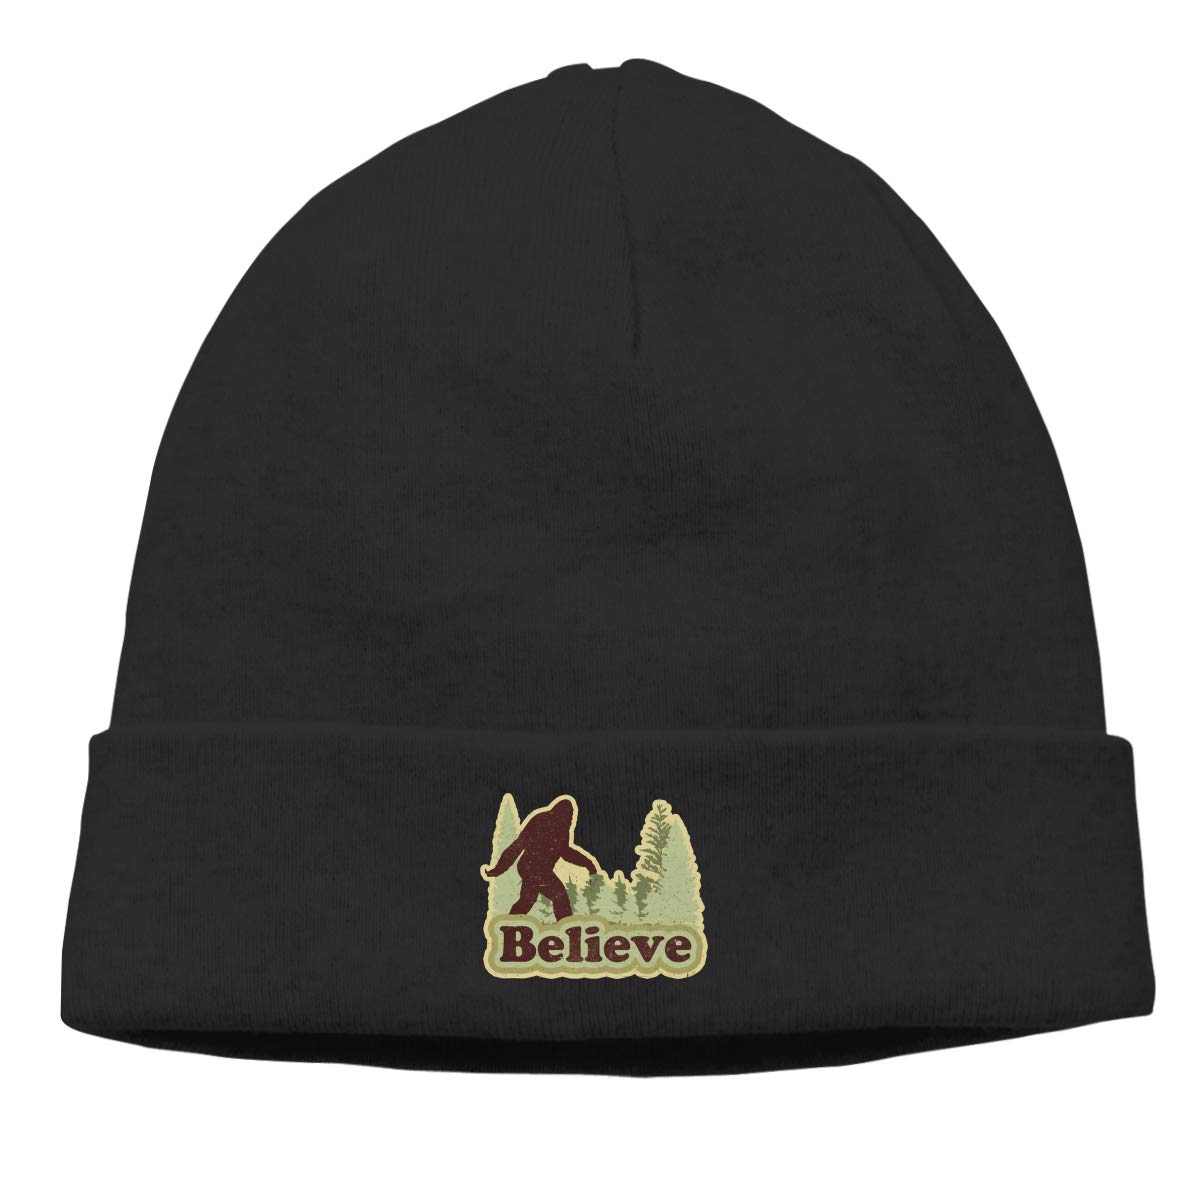 Nskngr Believe Bigfoot Cap Men Winter Summer Deliciously Soft Daily Beanie Hats Slouchy Beanie Hat